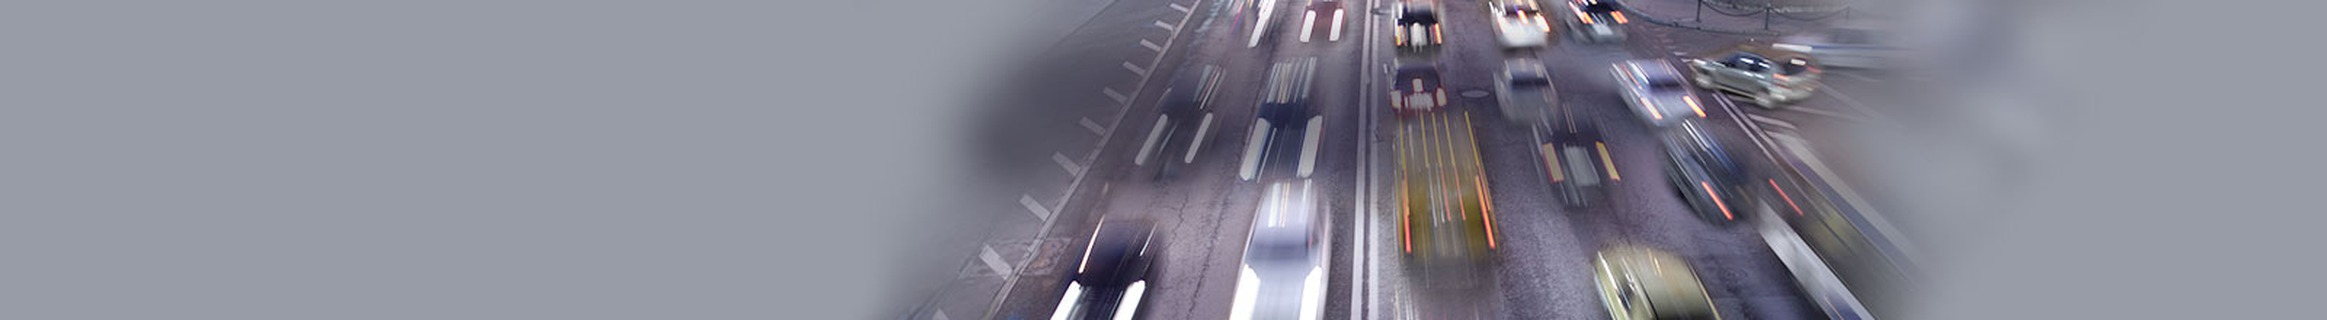 Intelligent traffic systems rely on vision technology